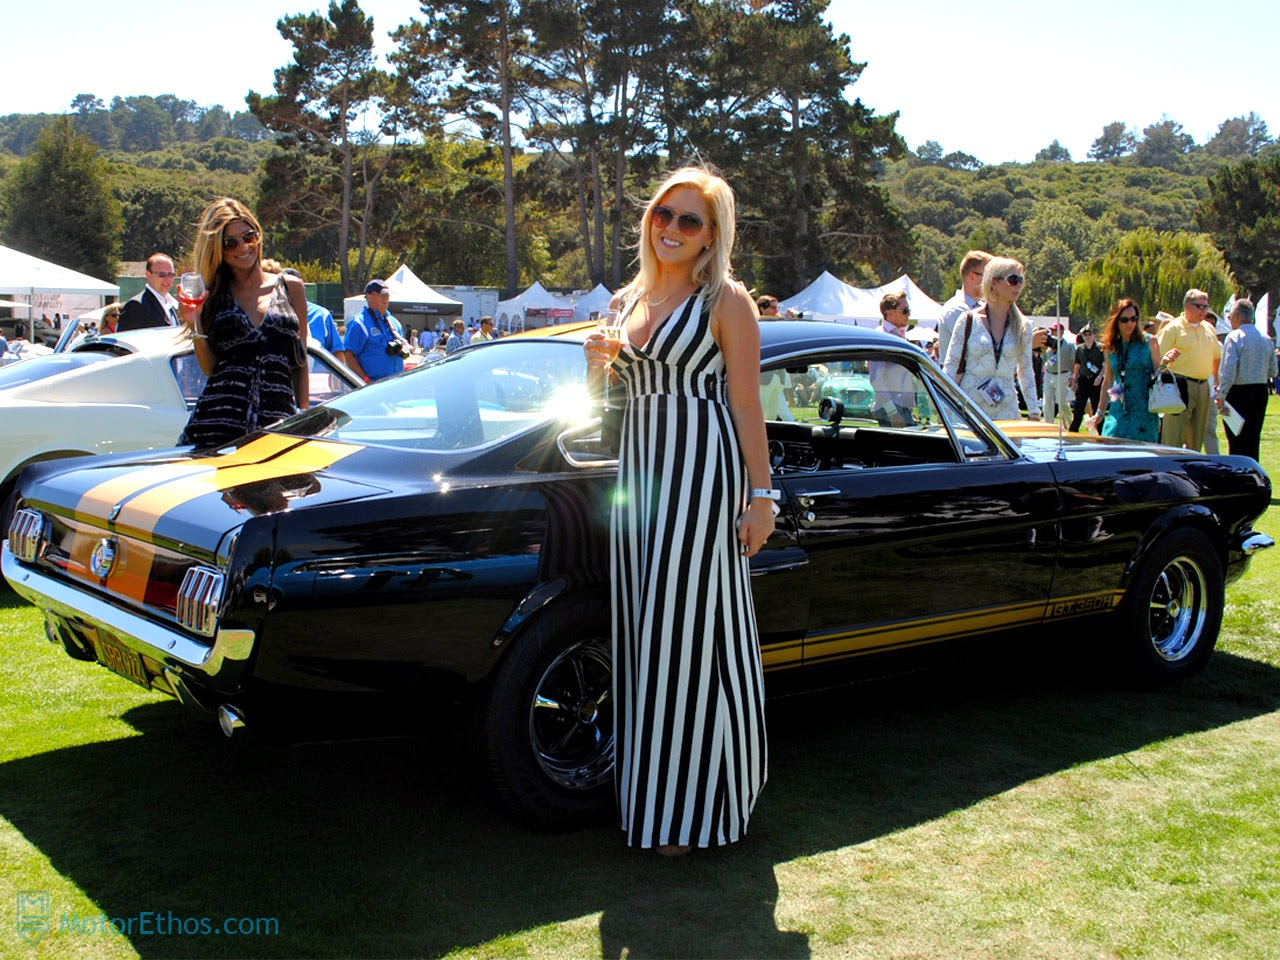 MotorEthos Discover Your Drive - Quail car show tickets price